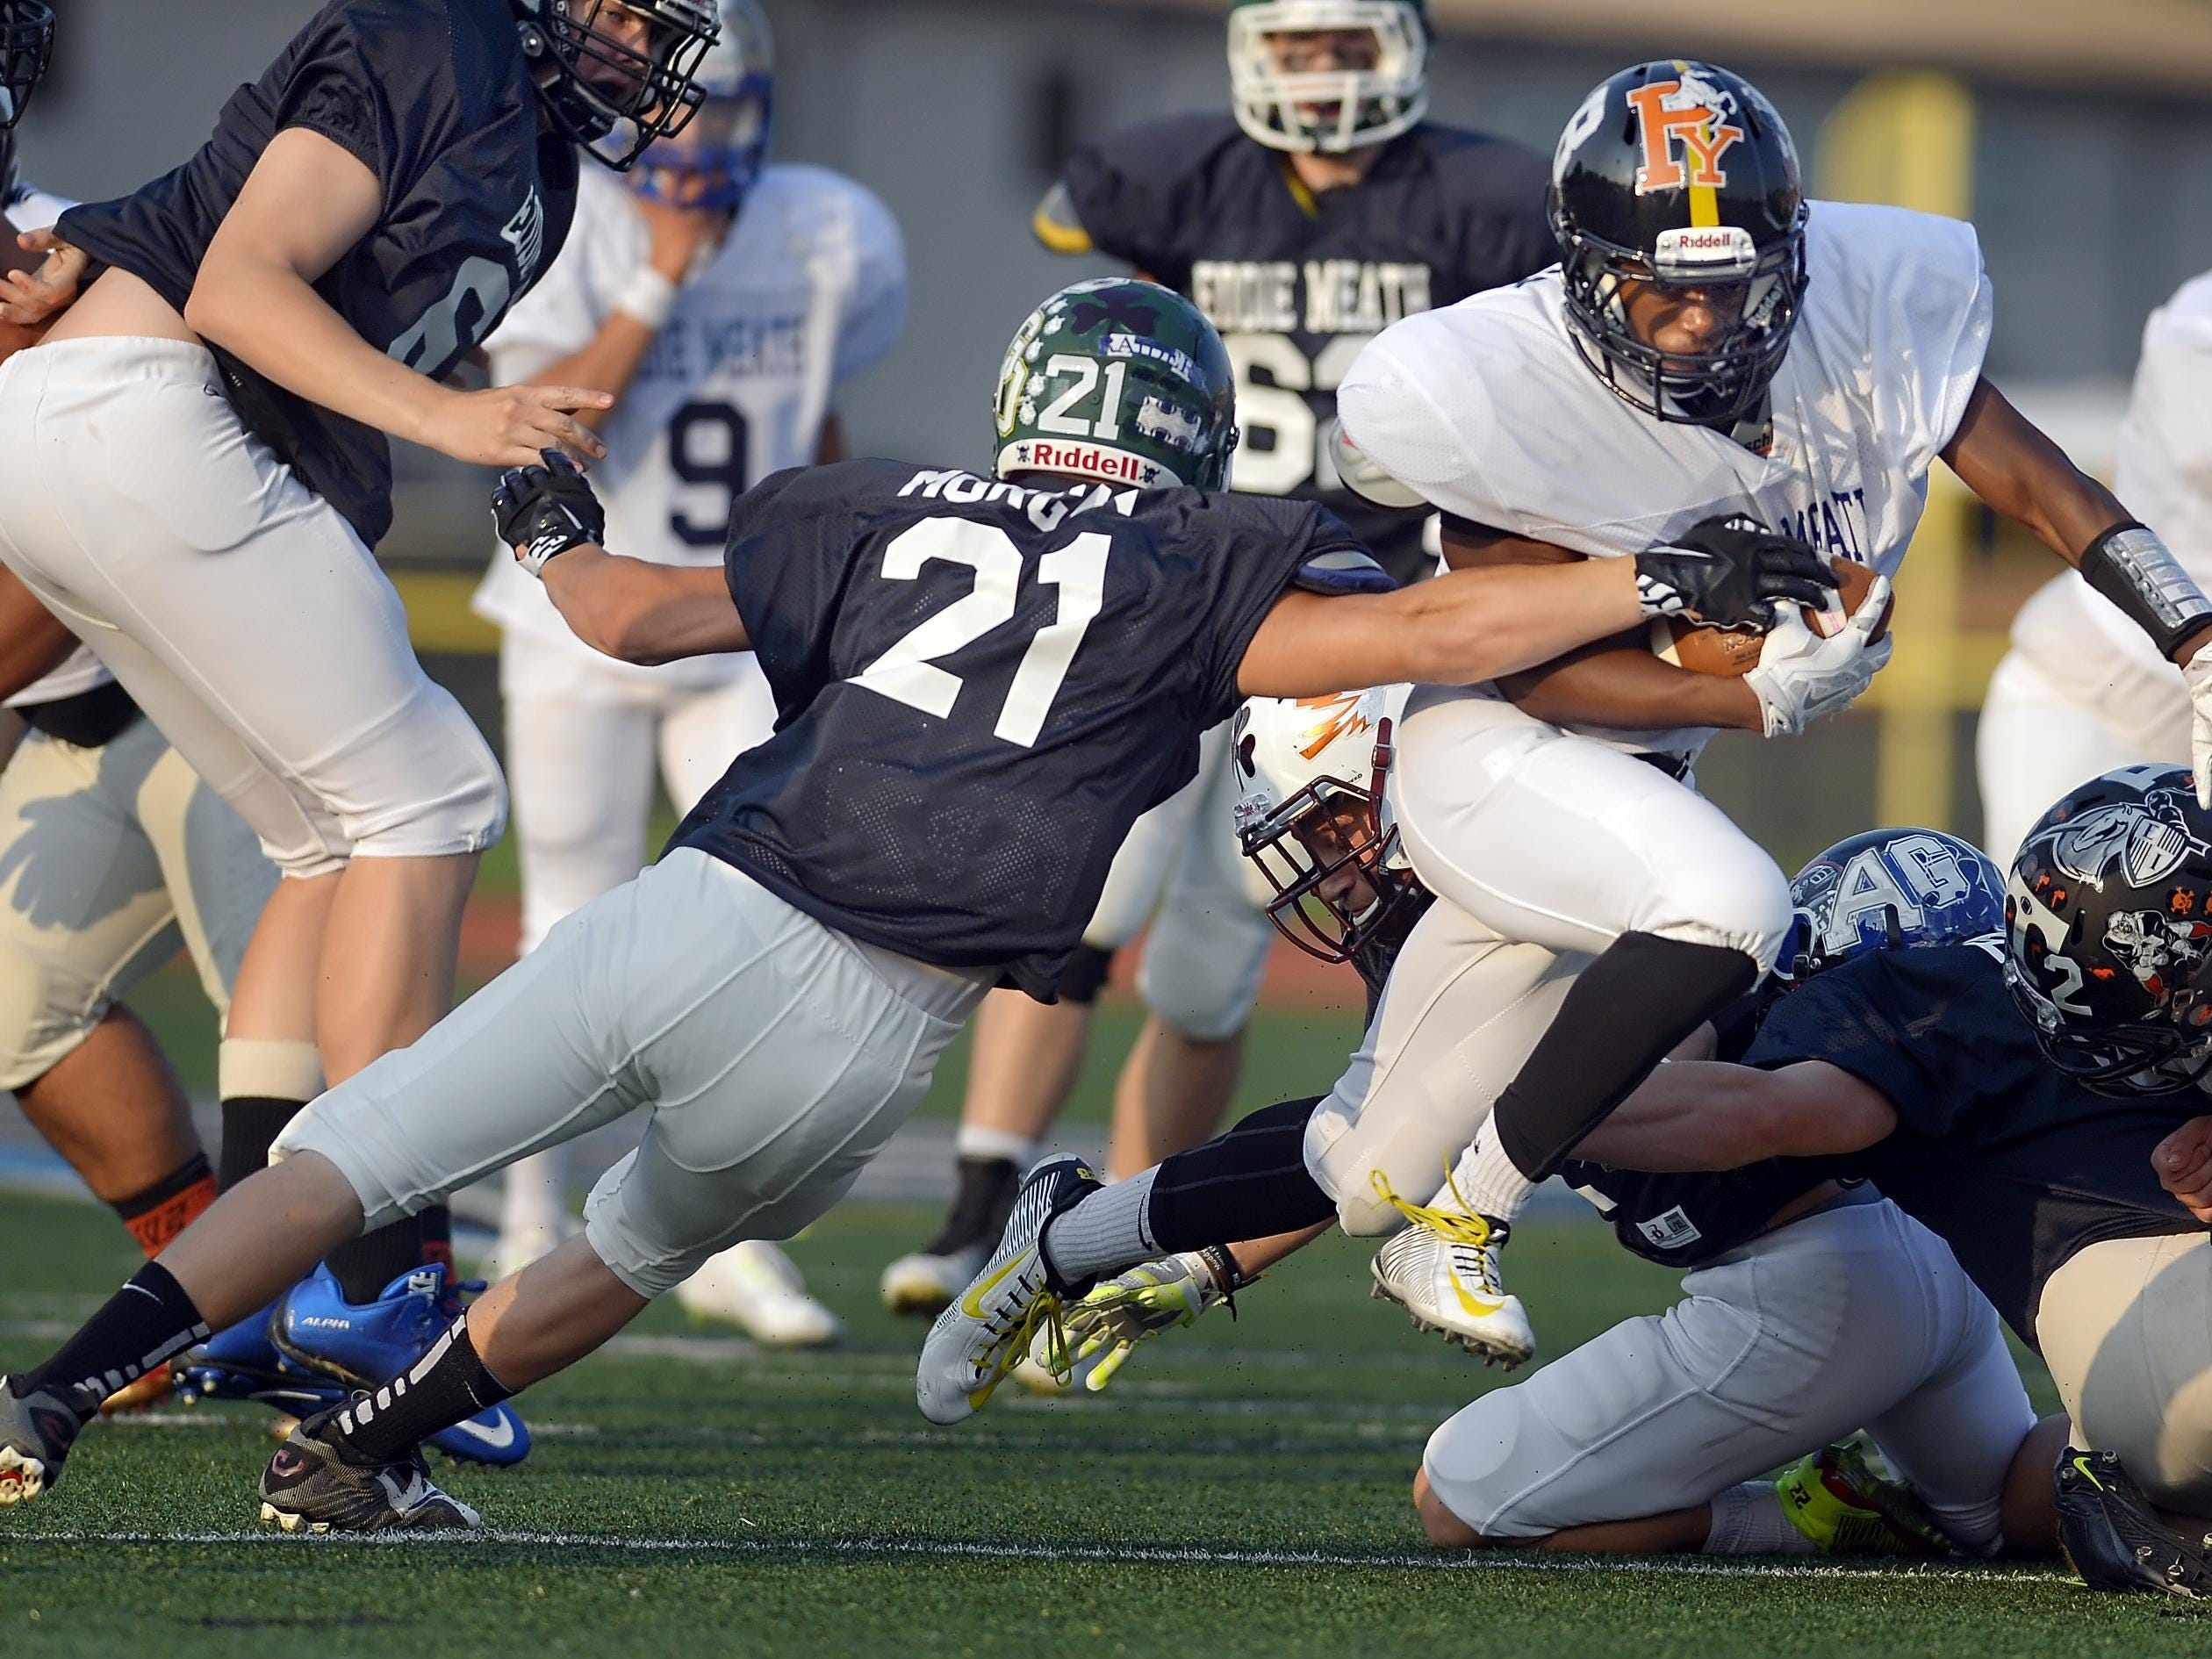 McQuaid's Amari Lawrence, right, avoids the tackle of Greece Olympia's Ryan Morgan during the 33rd Annual Eddie Meath All-Star Game played at Eastridge High School on Saturday, July 11, 2015.